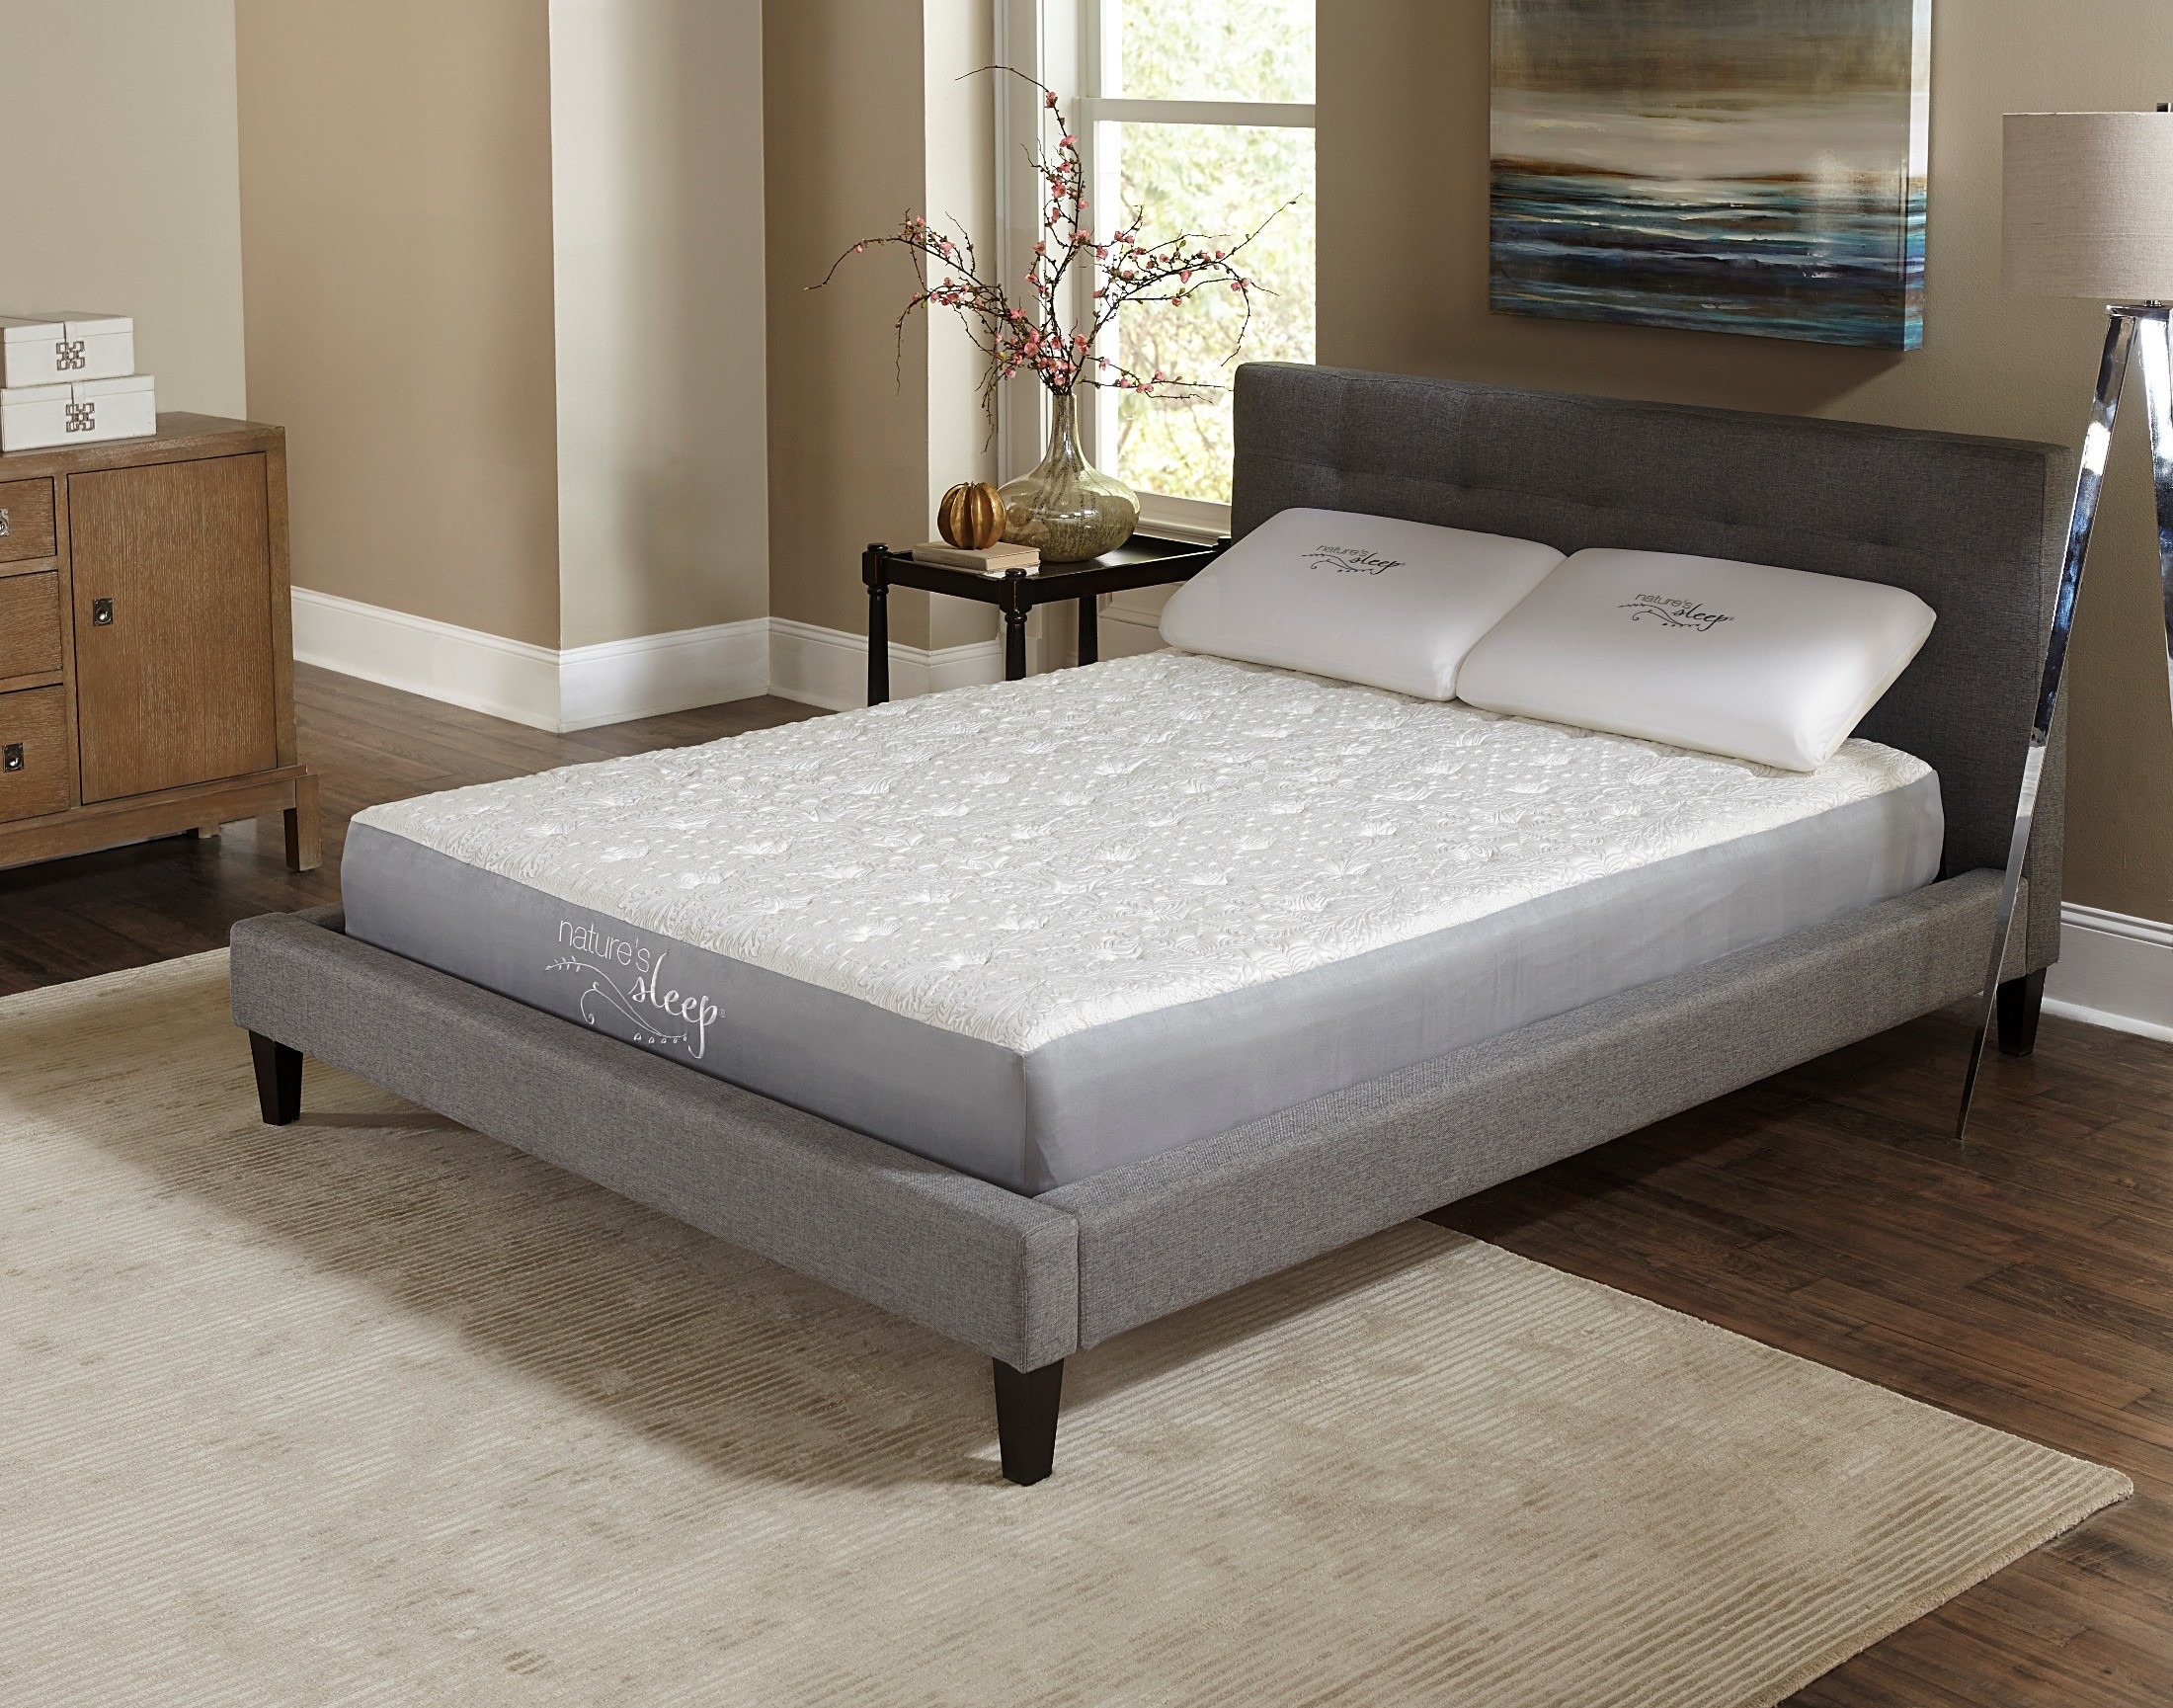 8 5 gel memory foam twin long mattress from nature 39 s. Black Bedroom Furniture Sets. Home Design Ideas